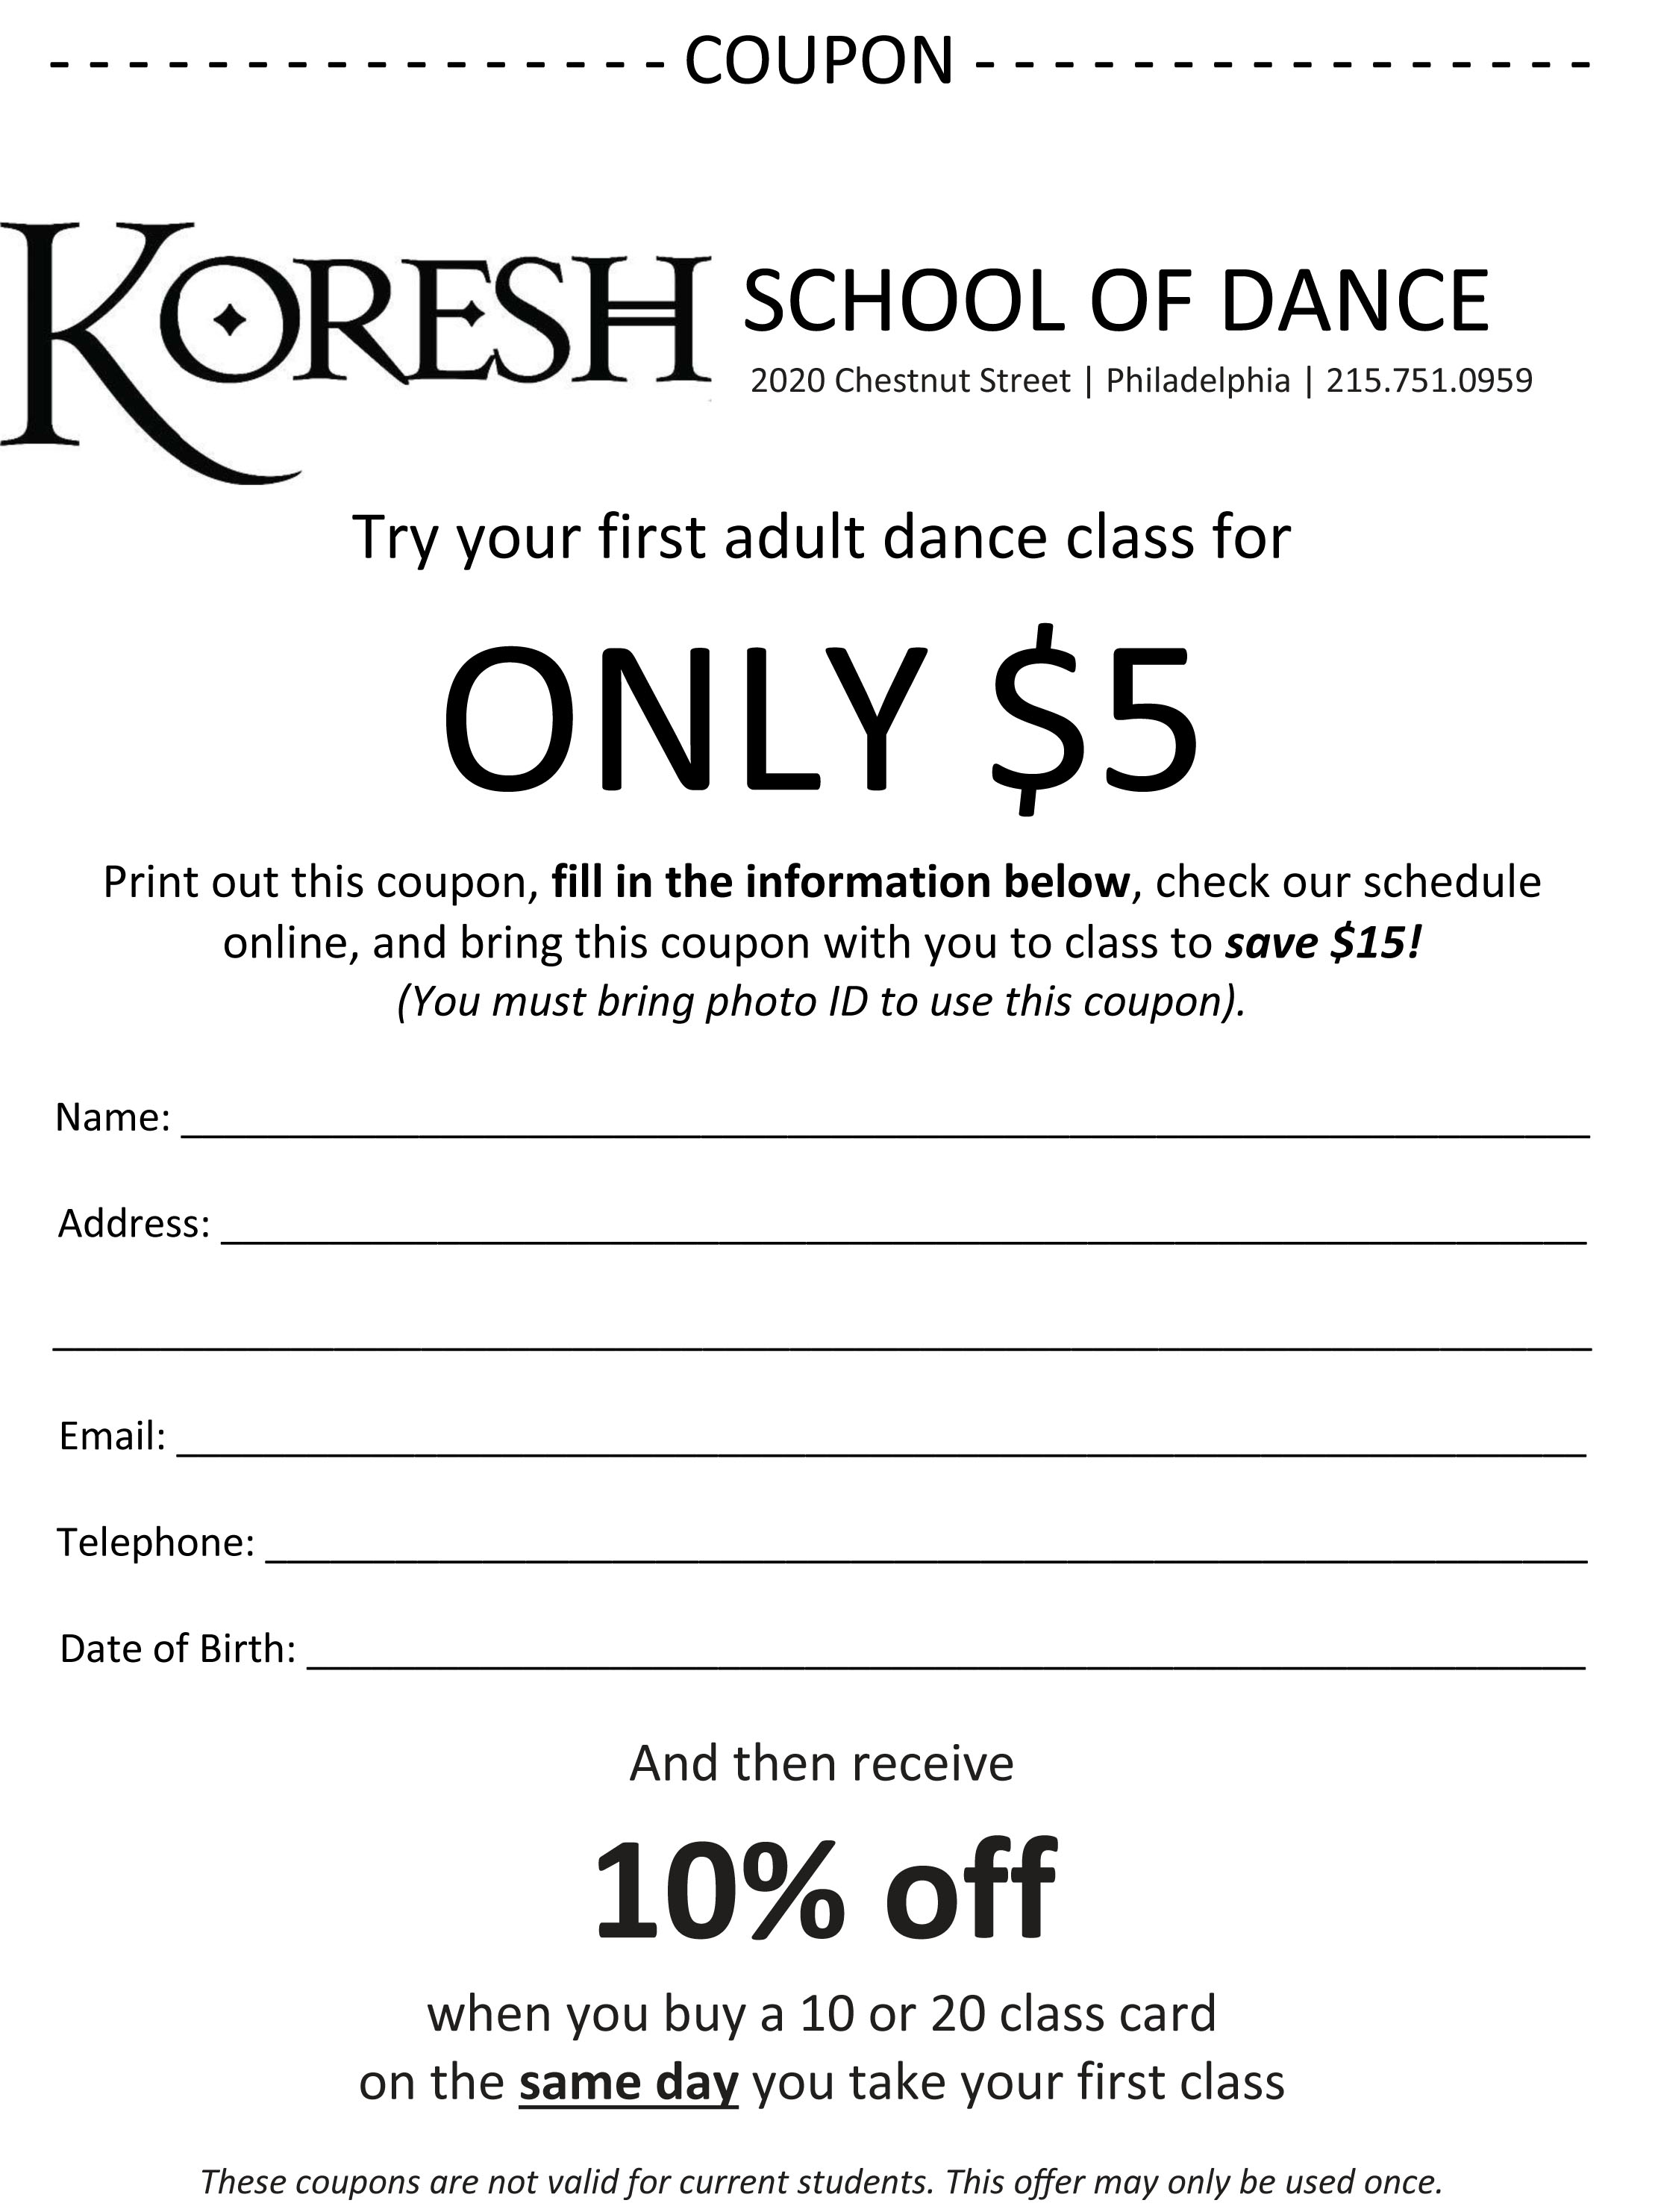 Whether you're performing in the spotlight, practicing in the studio or hanging out techhelpdesk.tk has been visited by 10K+ users in the past monthNew Arrivals · Best Sellers · Wholesale Pricing · Online AccountDance Leotards - From $ - + styles available [more].